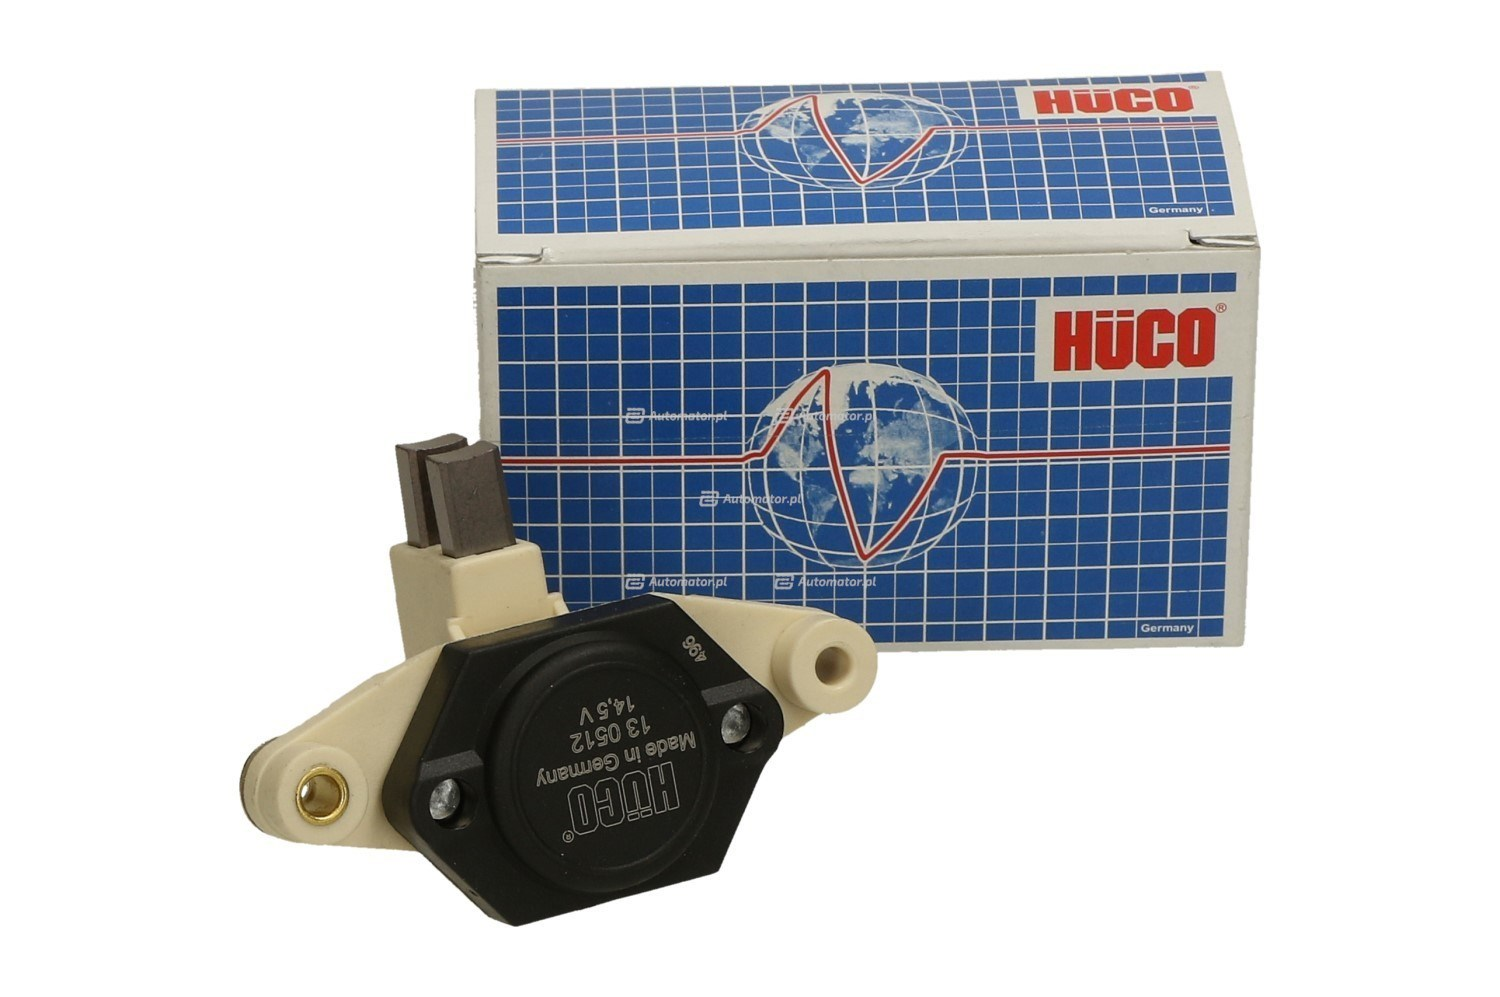 huc 101 3 anti-lock braking system (abs) abs training 2 anti-lock braking system (abs) purpose anti-lock brake systems (abs) - generally also referred to as anti-lock.